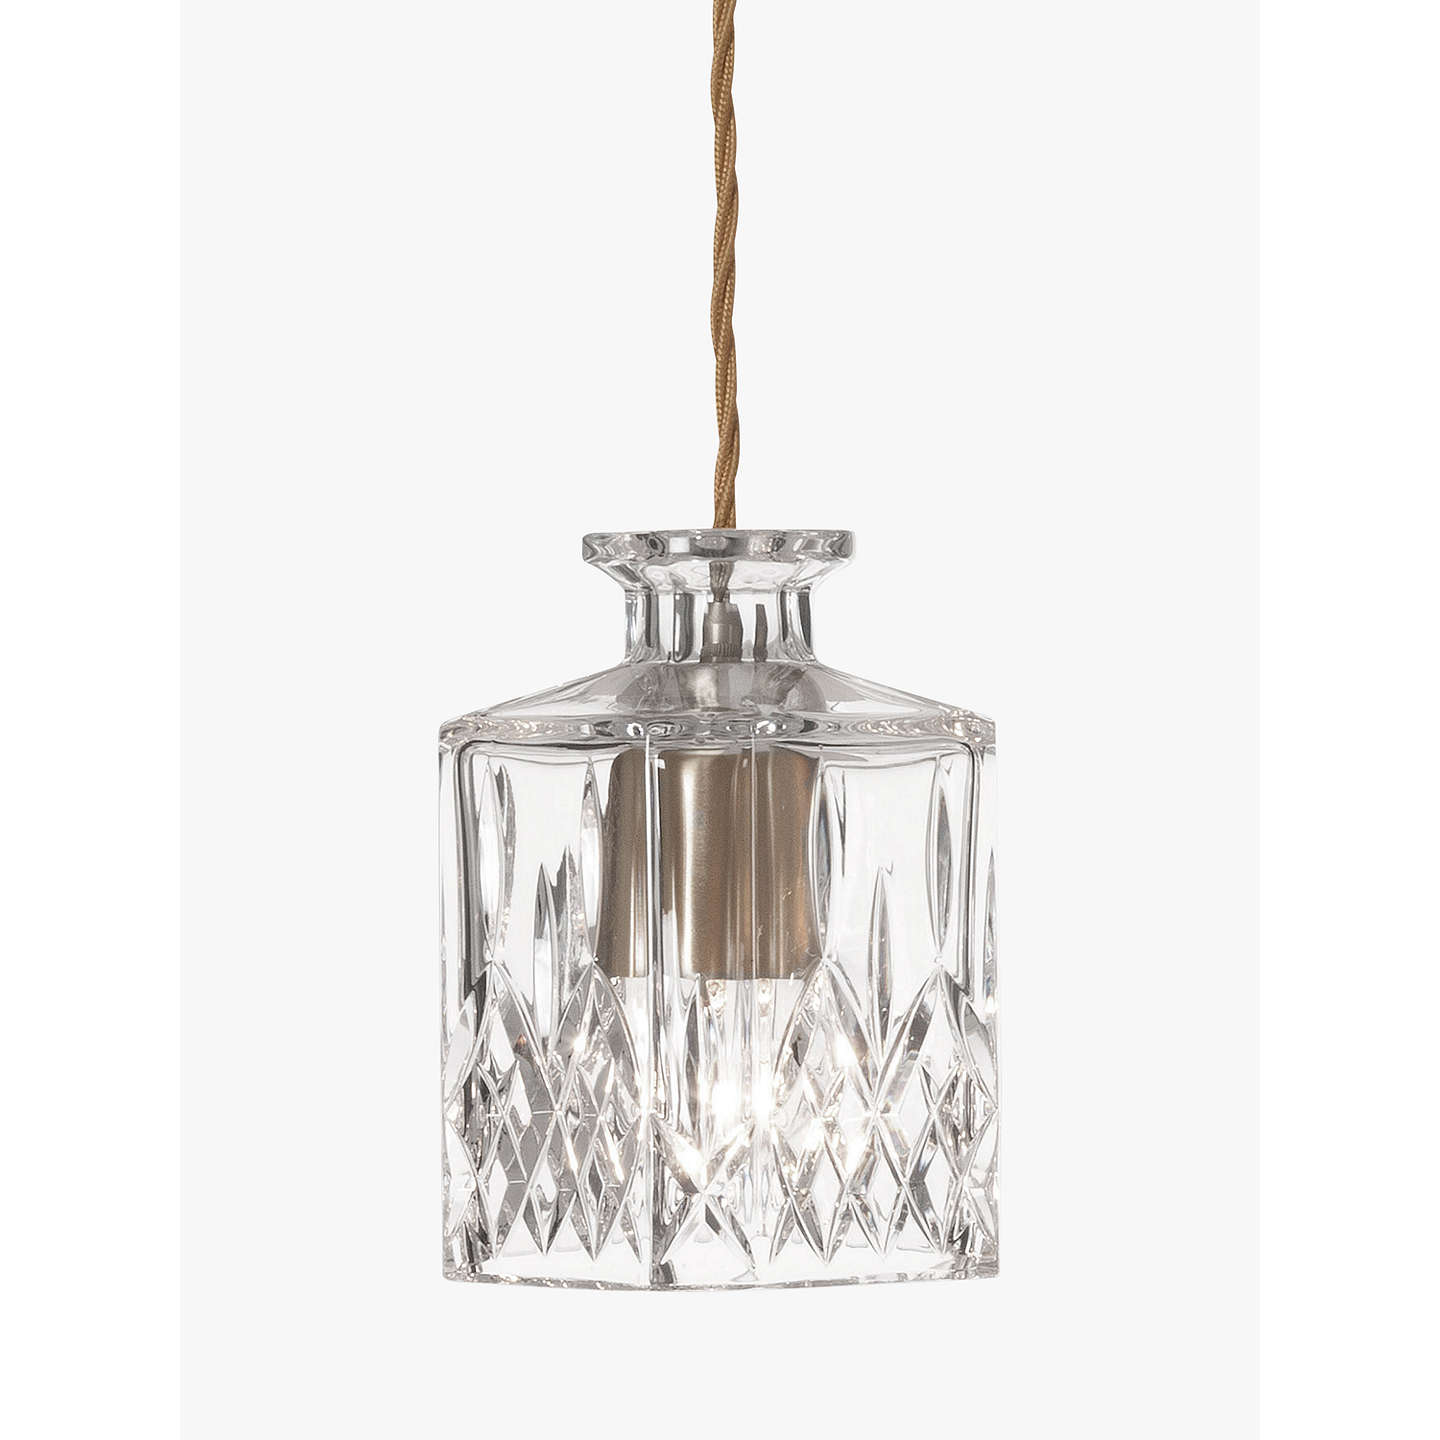 BuyLee Broom Square Decanter Pendant Online at johnlewis.com